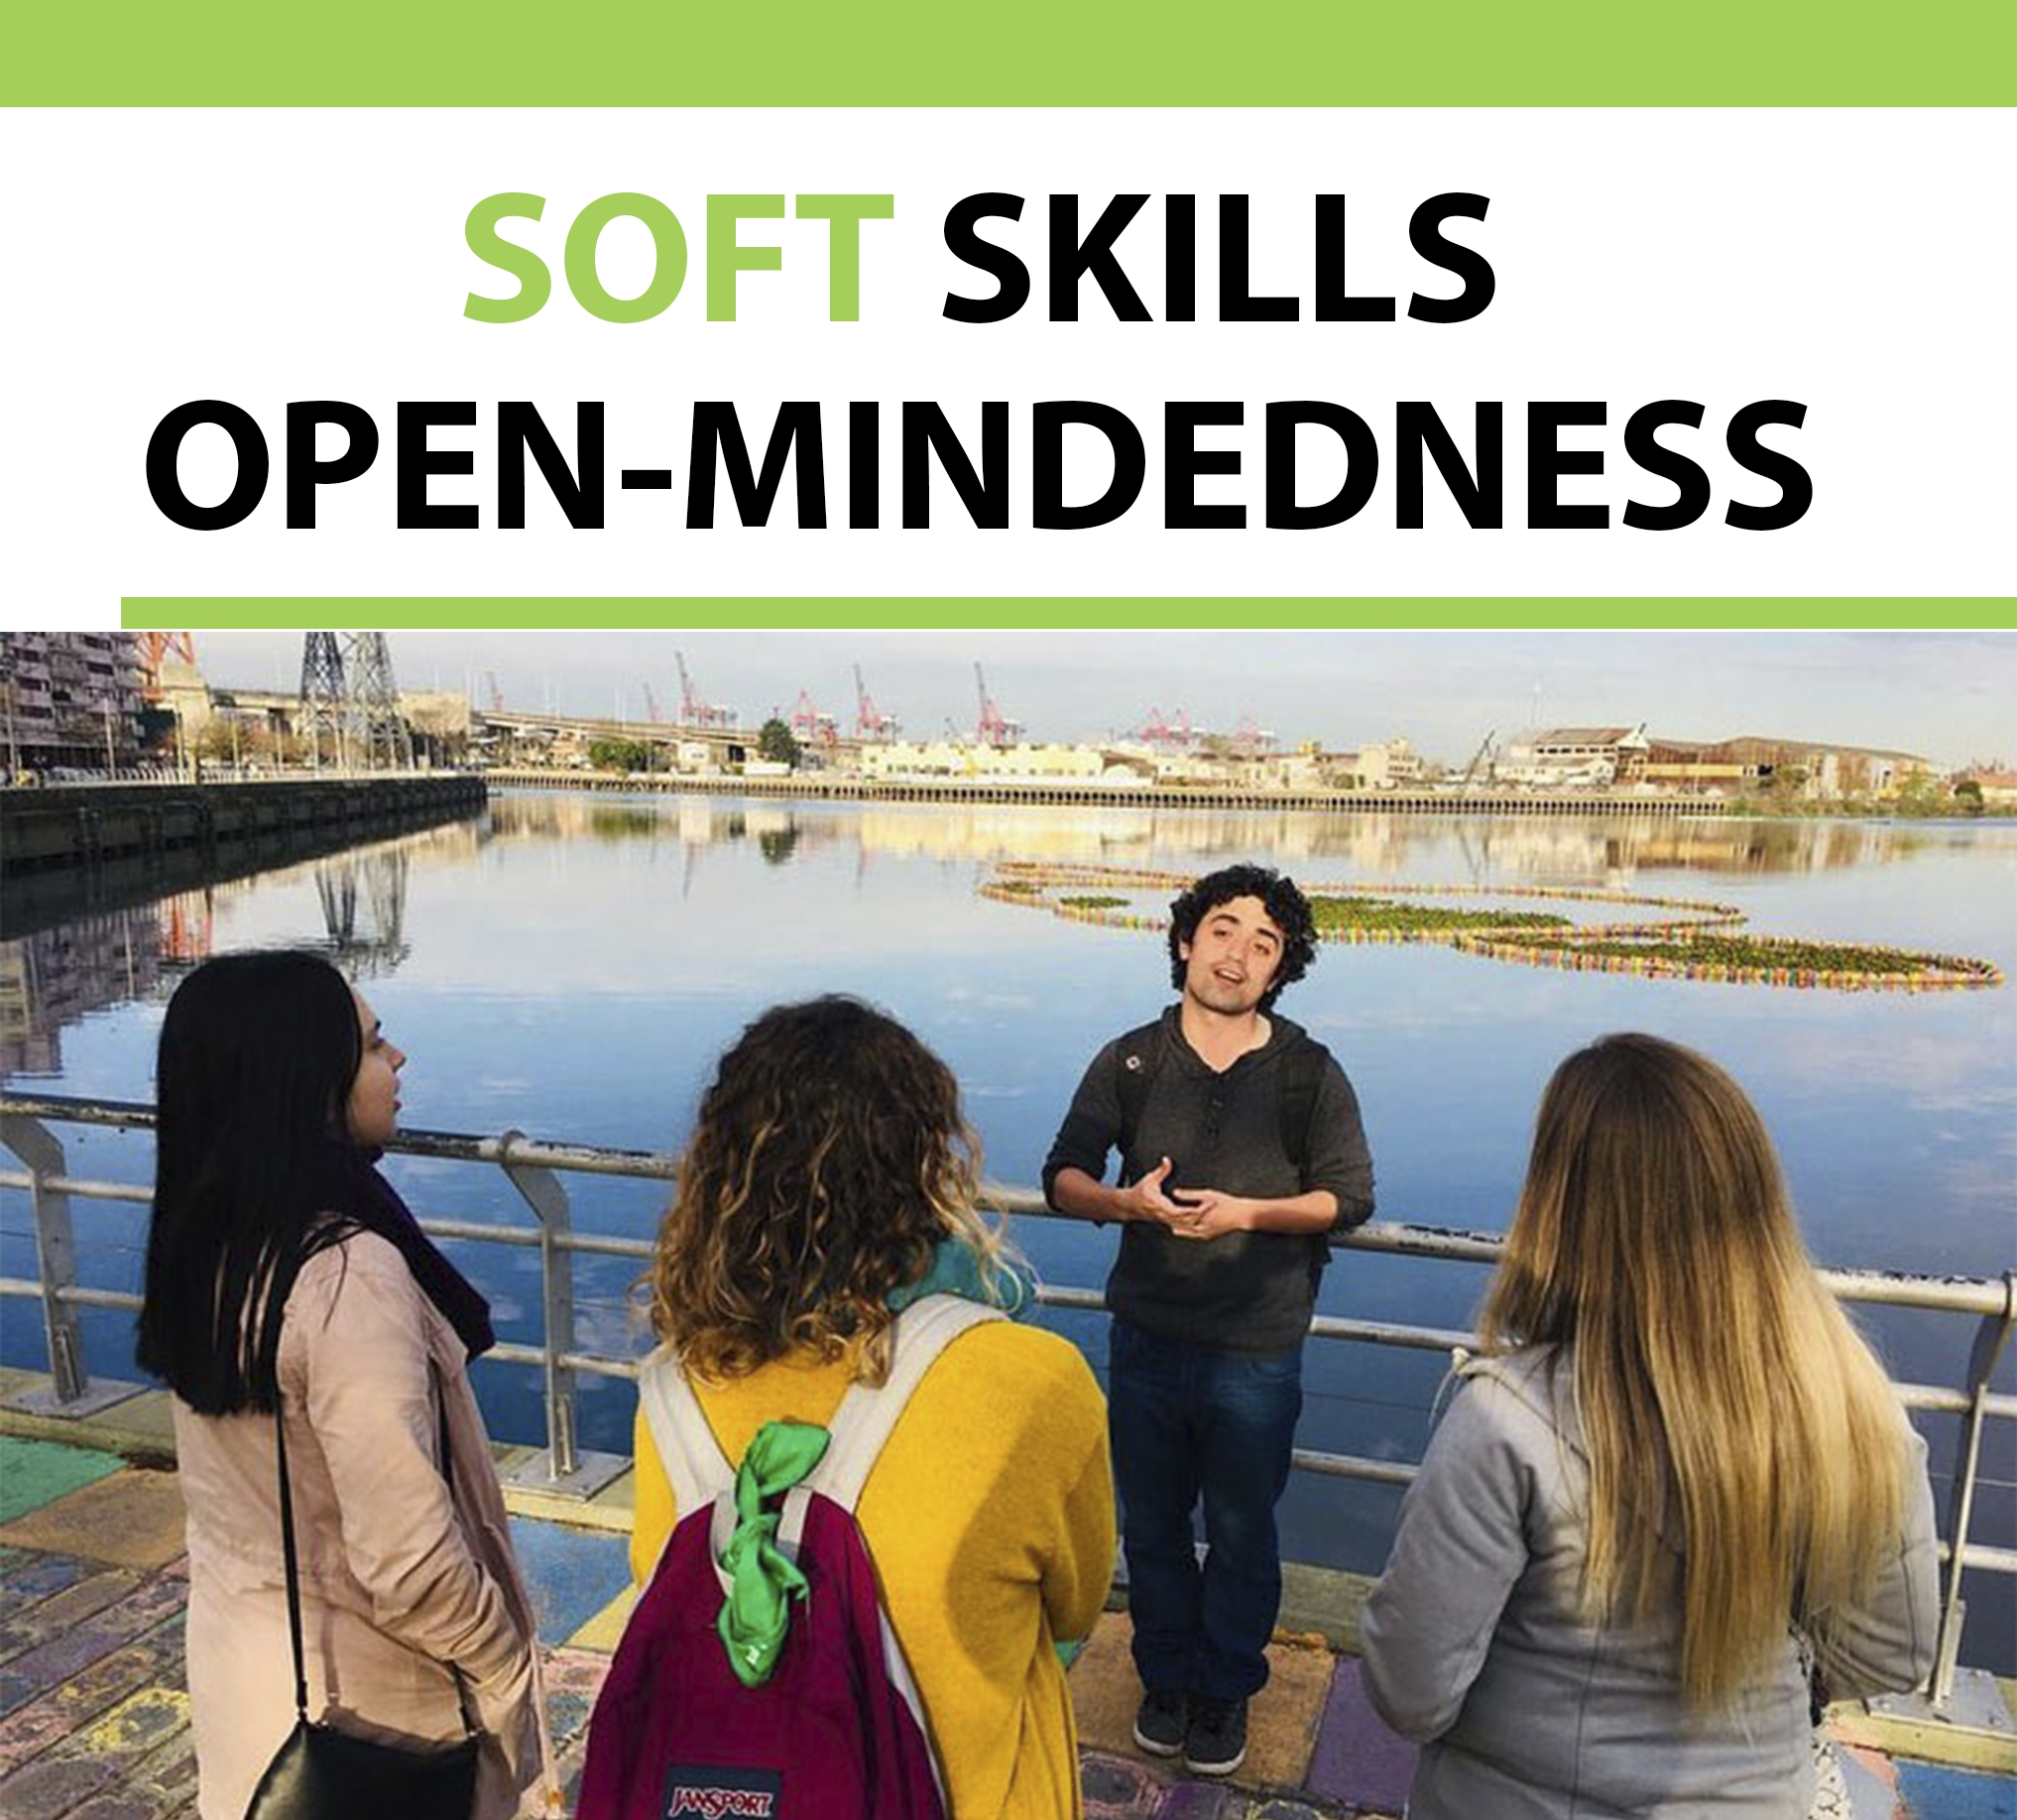 Let's talk about soft skills: Open-Mindedness